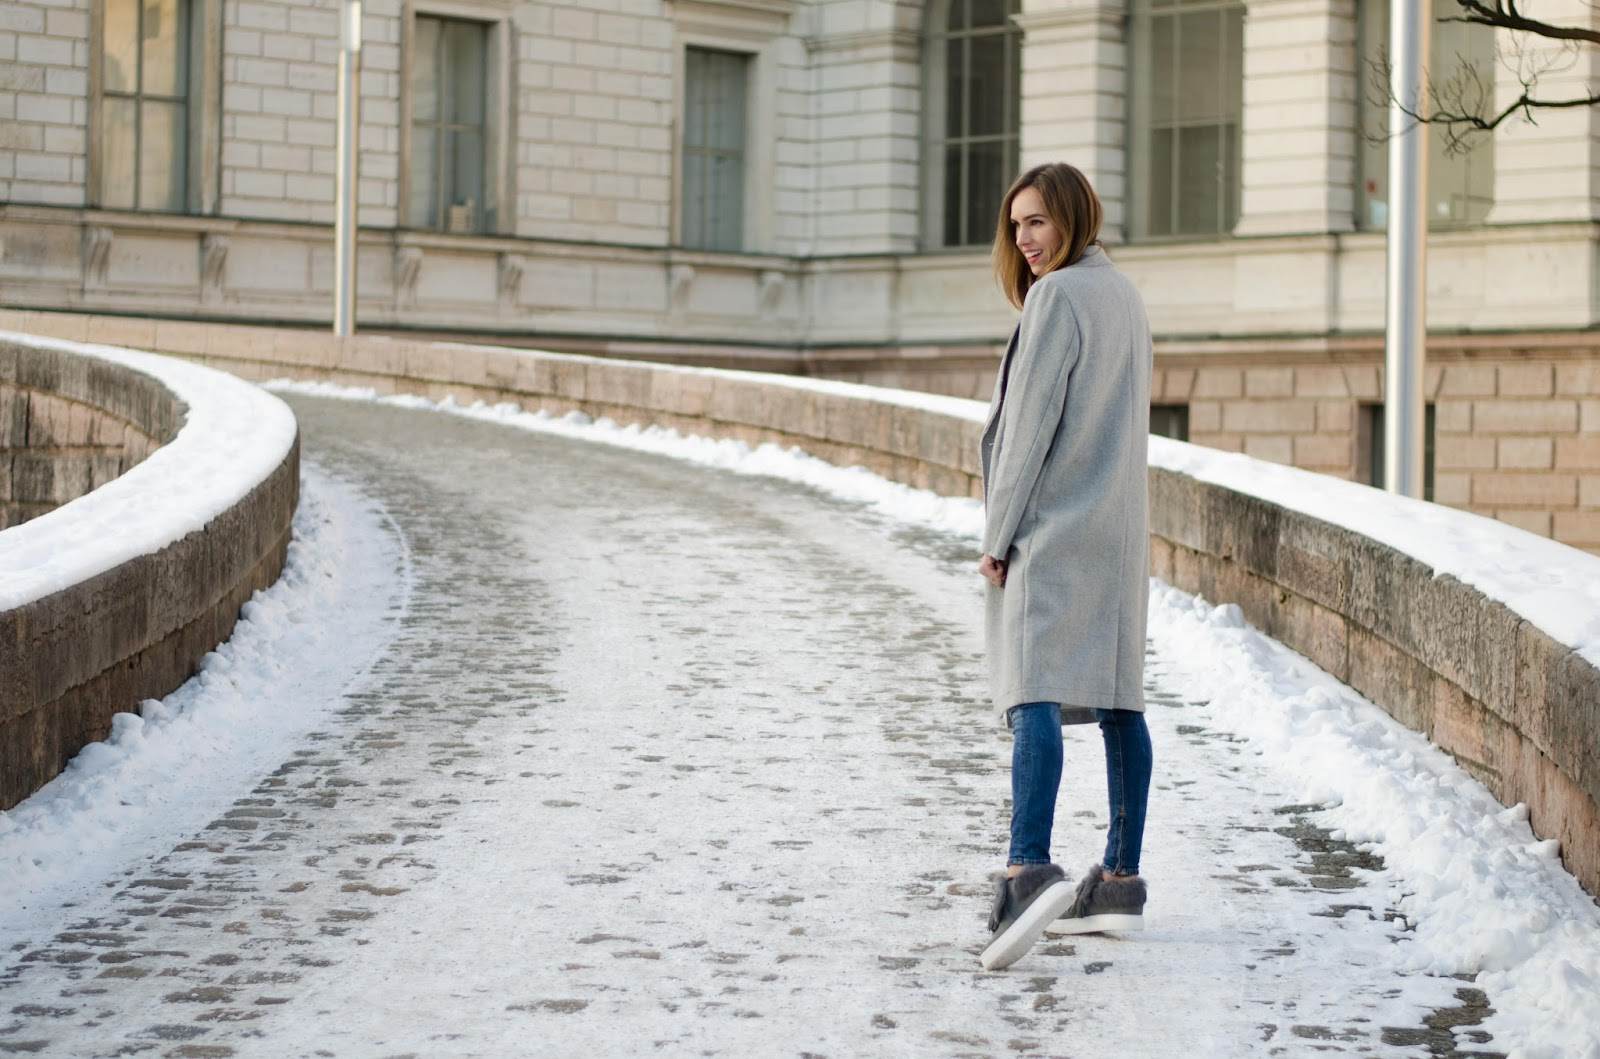 kristjaana mere vila gray wool coat fur sneakers winter outfit